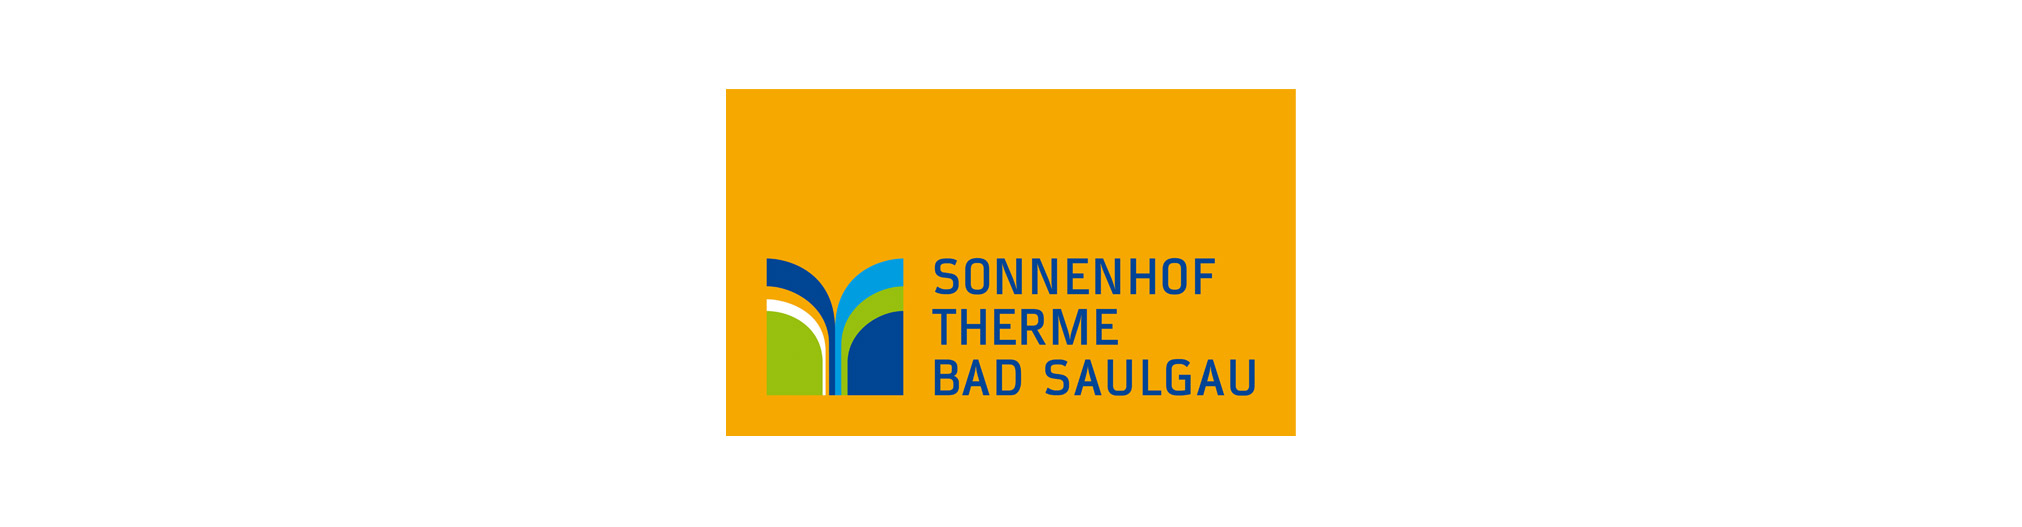 """Sonnenhof Therme"" Bad Saulgau"